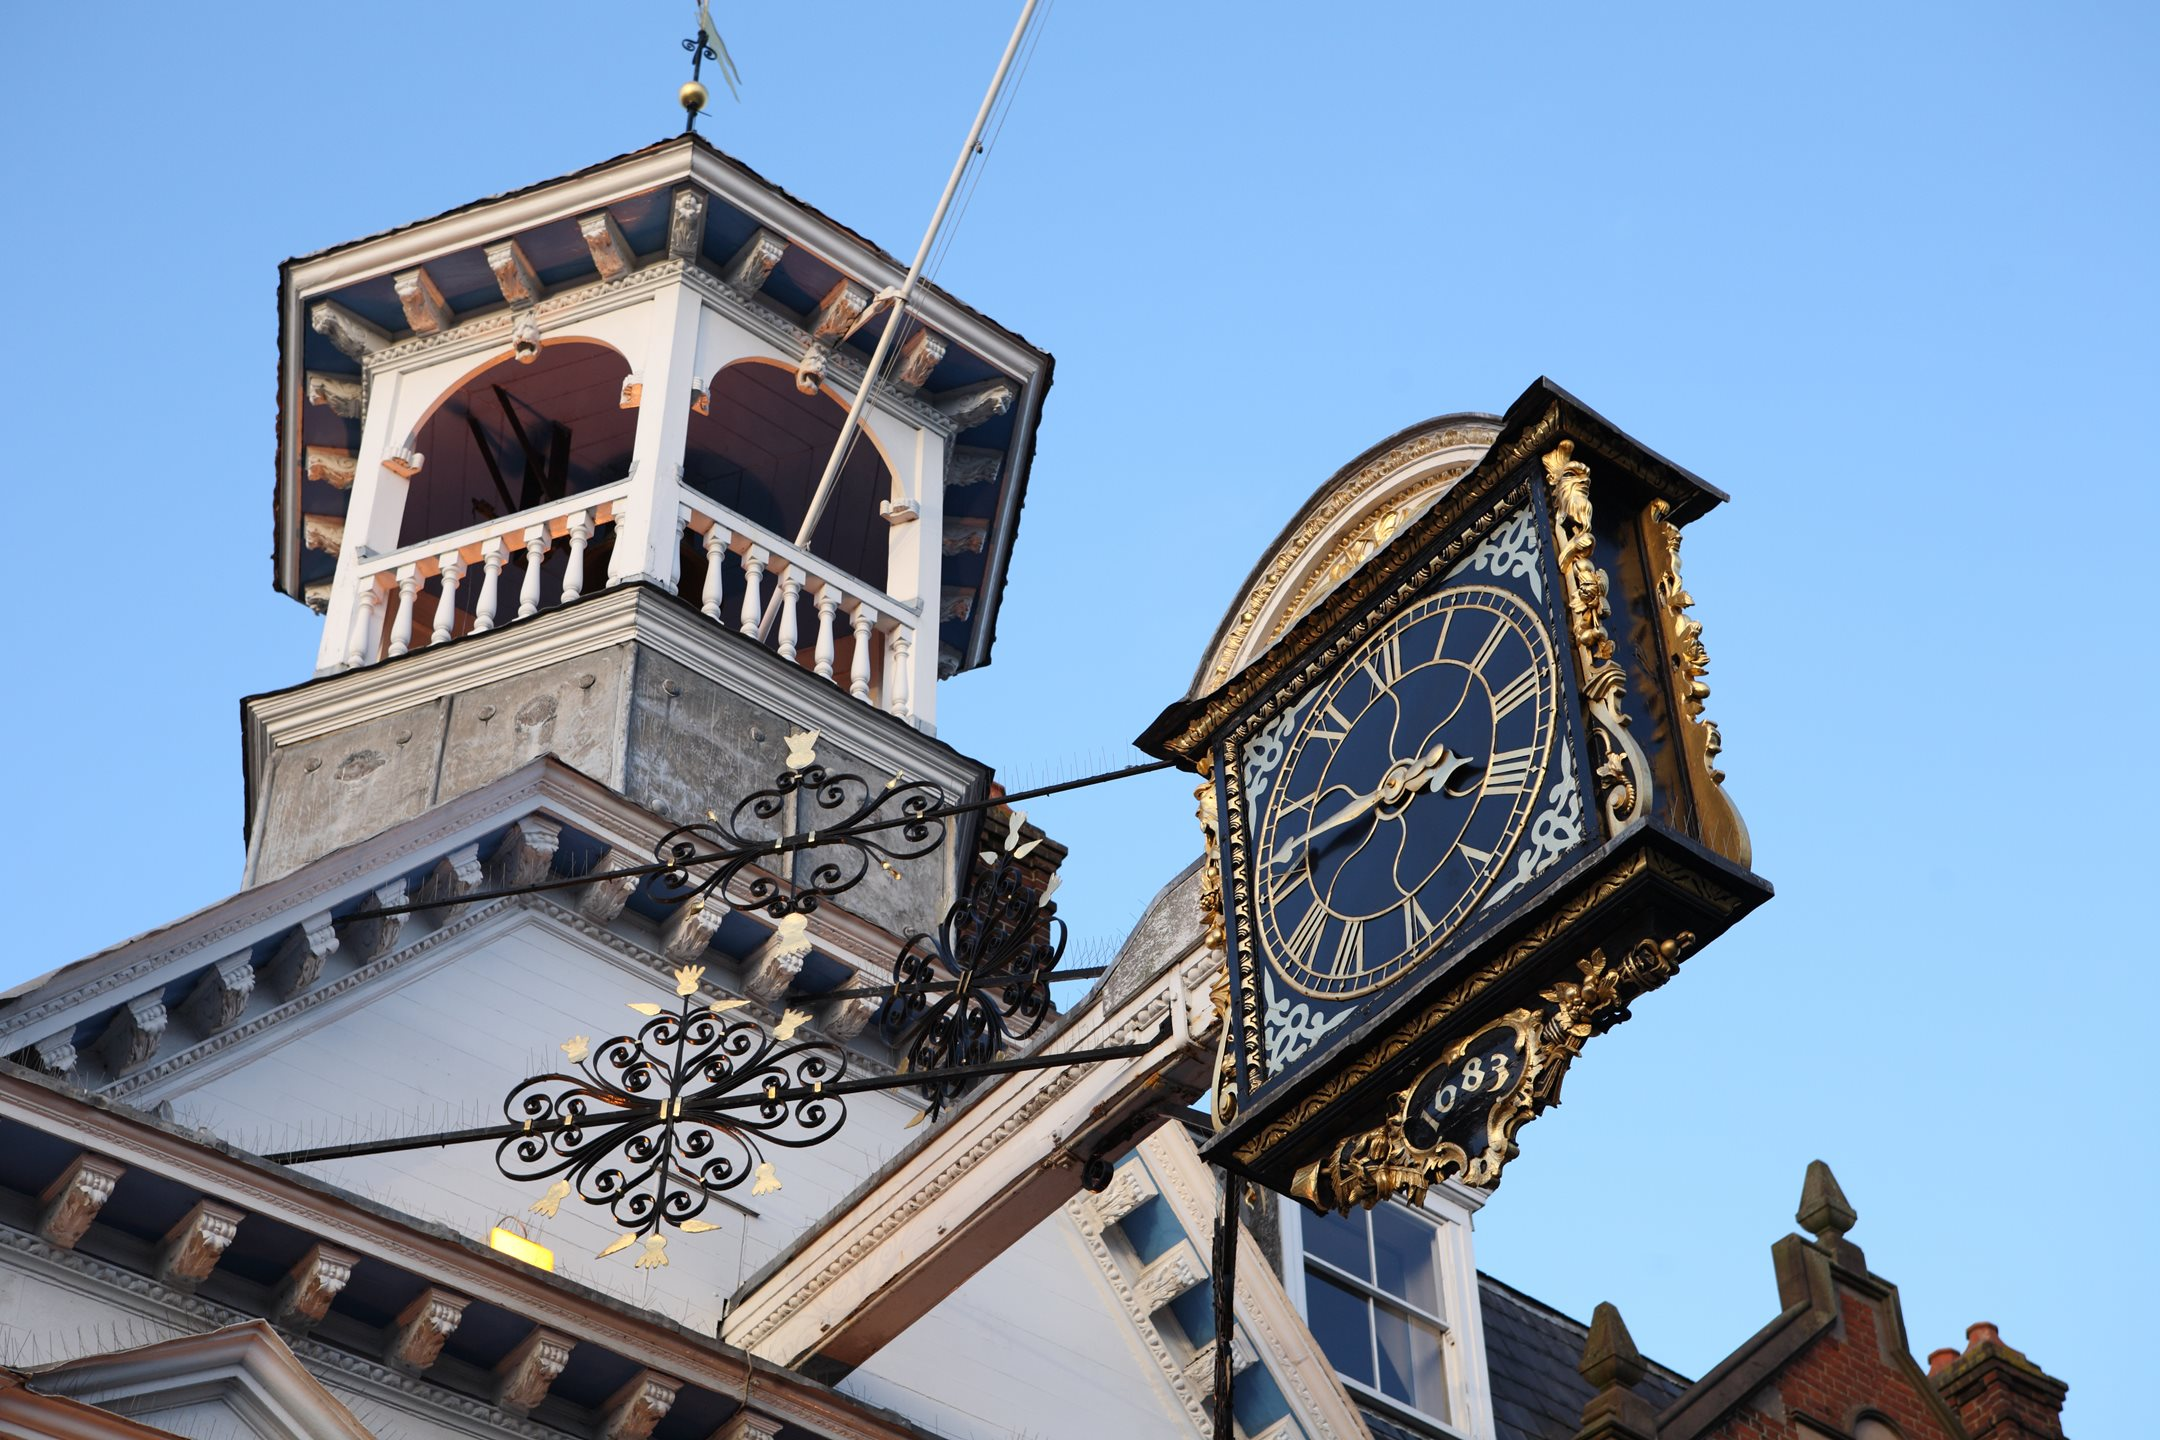 Guildford Guildhall clock